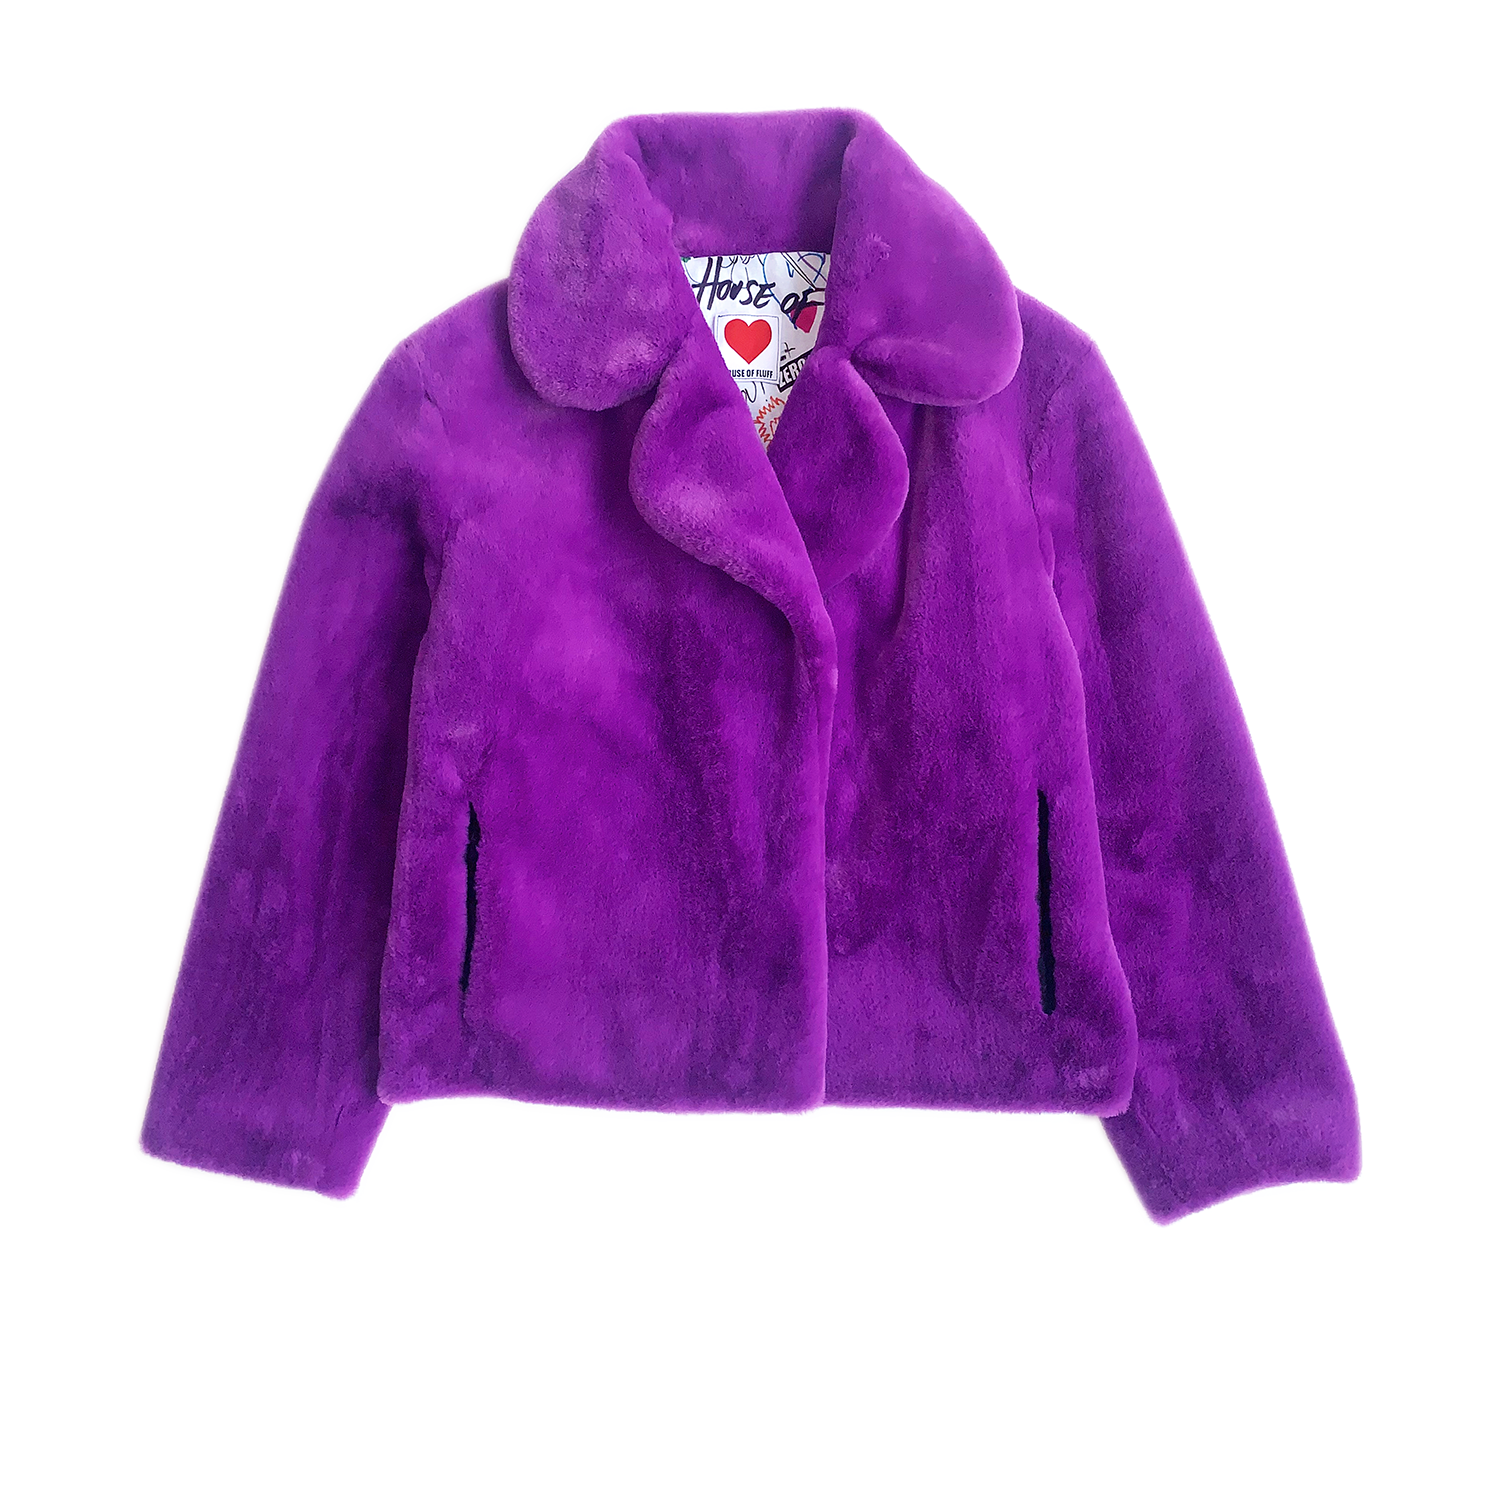 products/violet_jacket_front.png